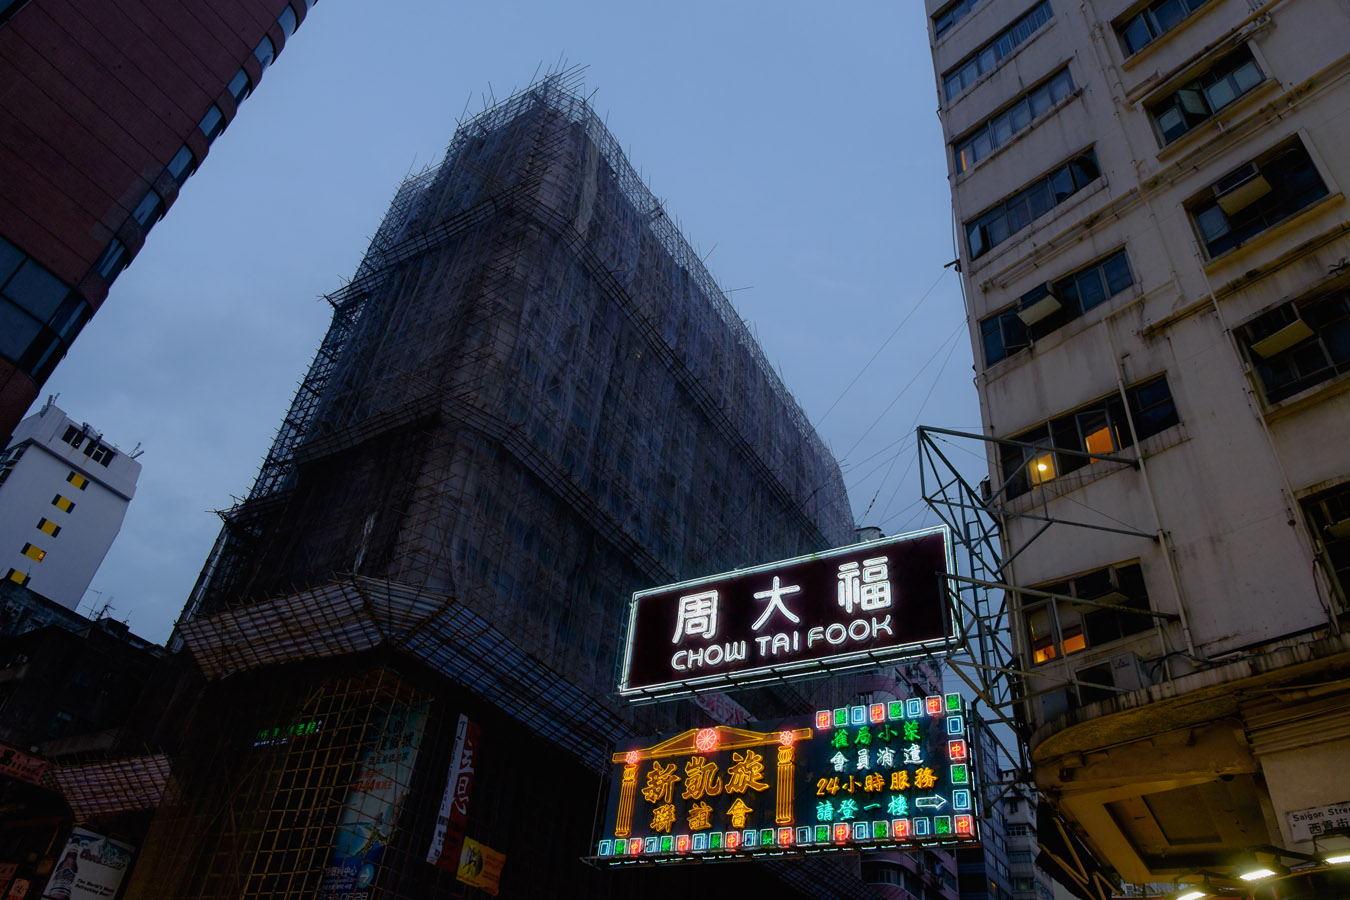 Hong Kong NEON, photography by Sharon Blance